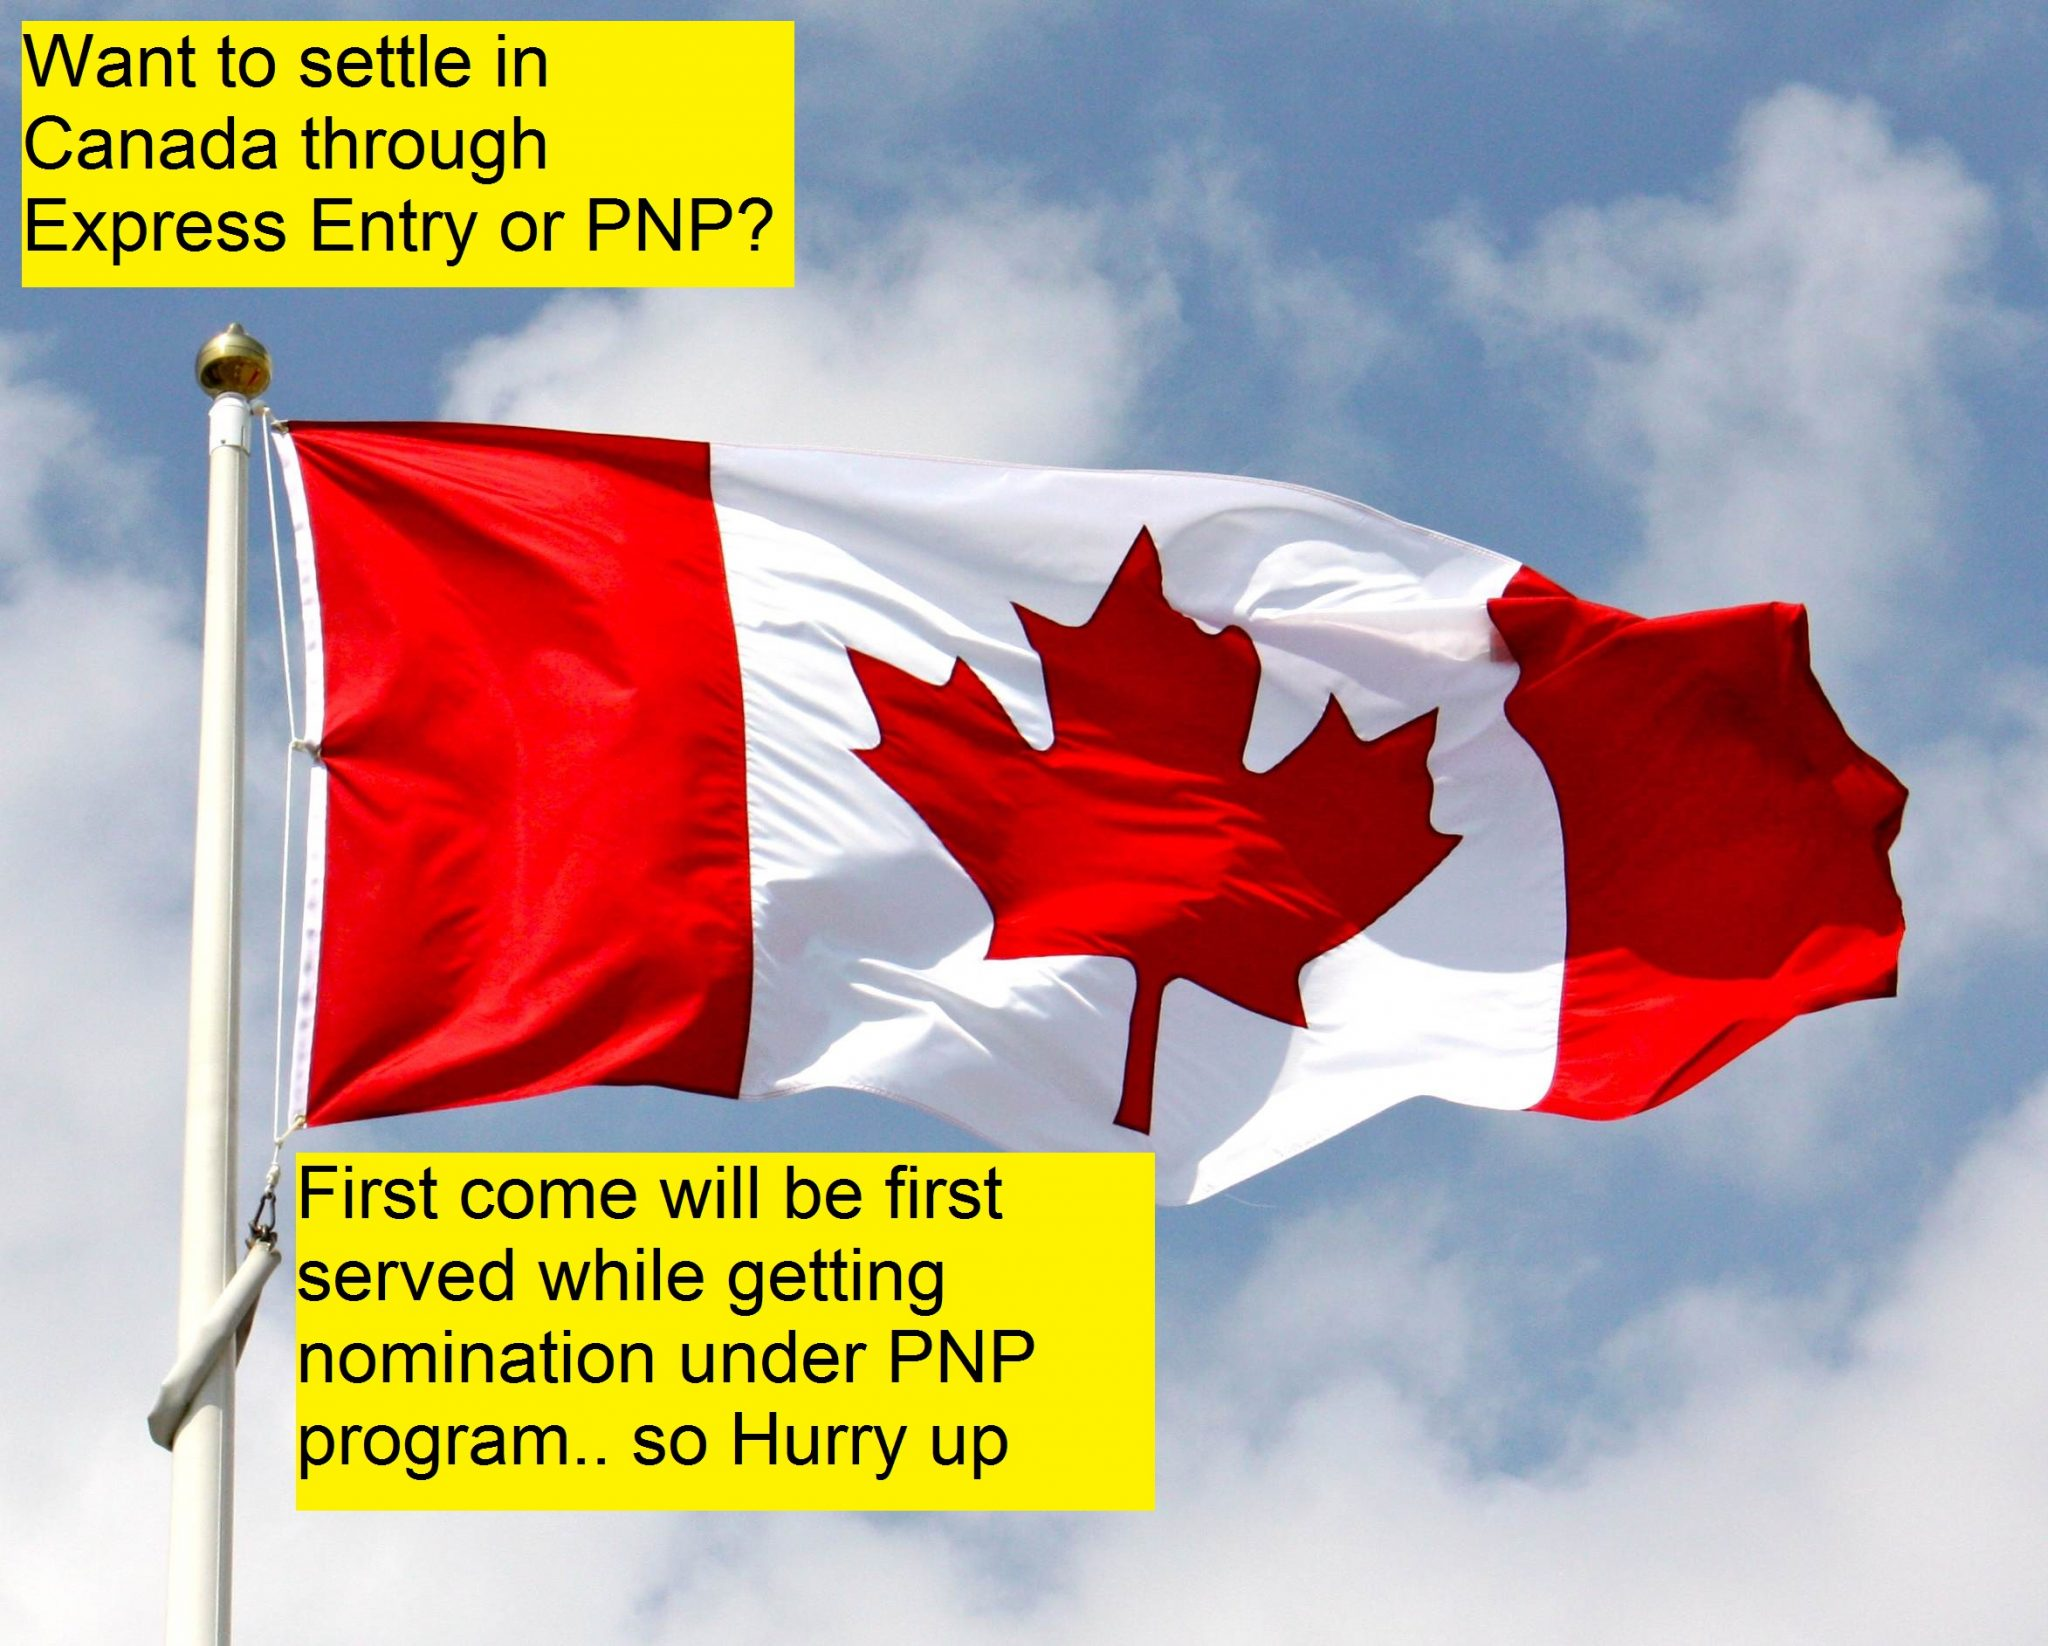 different approaches adopted by Express entry and Provincial Nomination Program